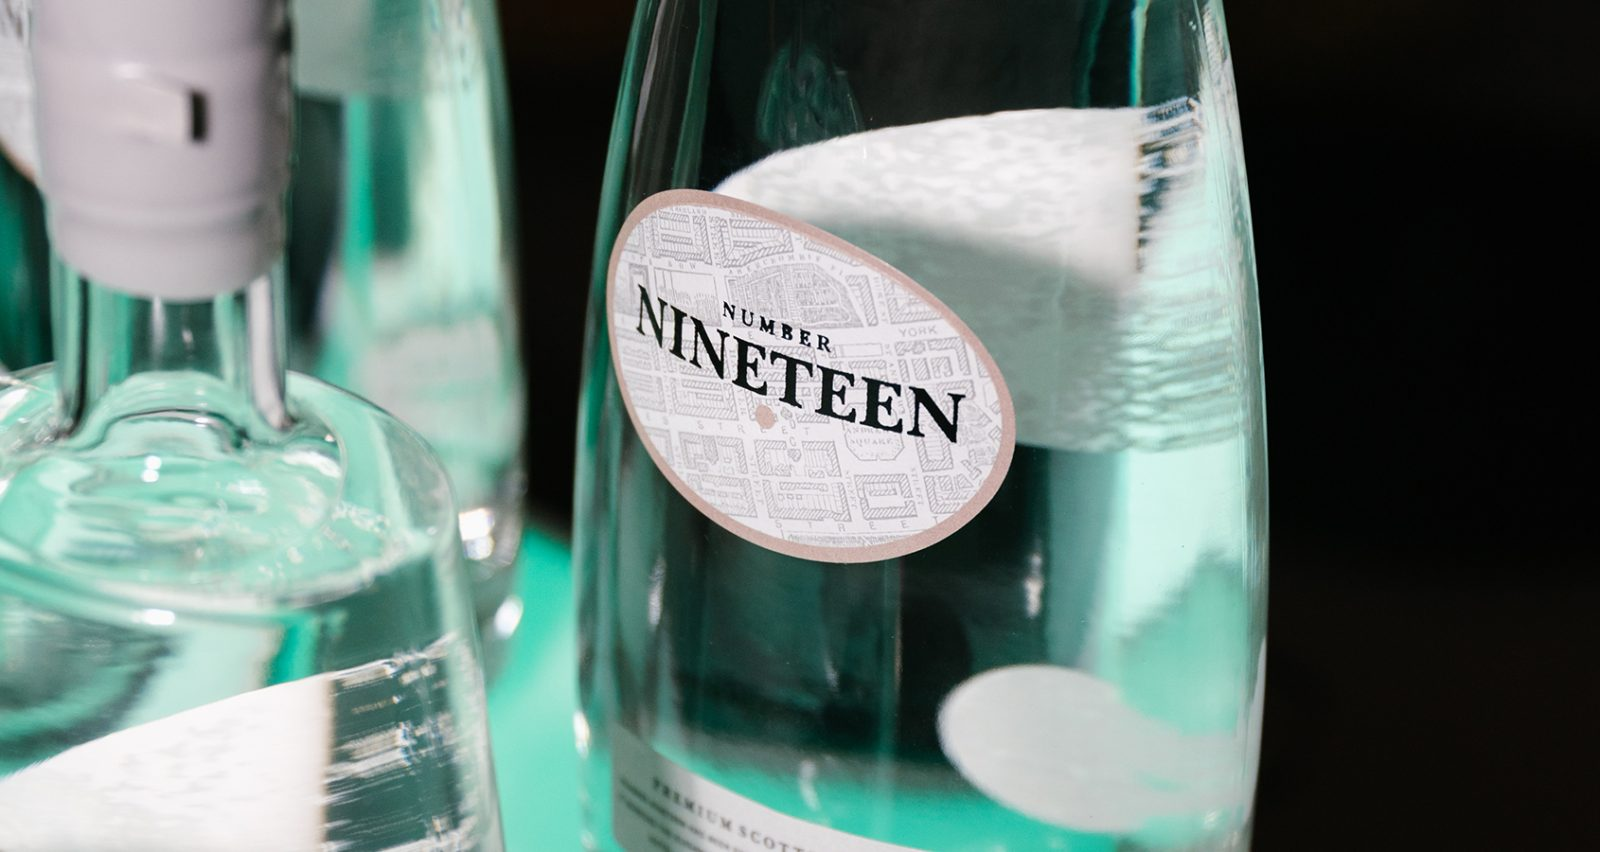 Number Nineteen gin